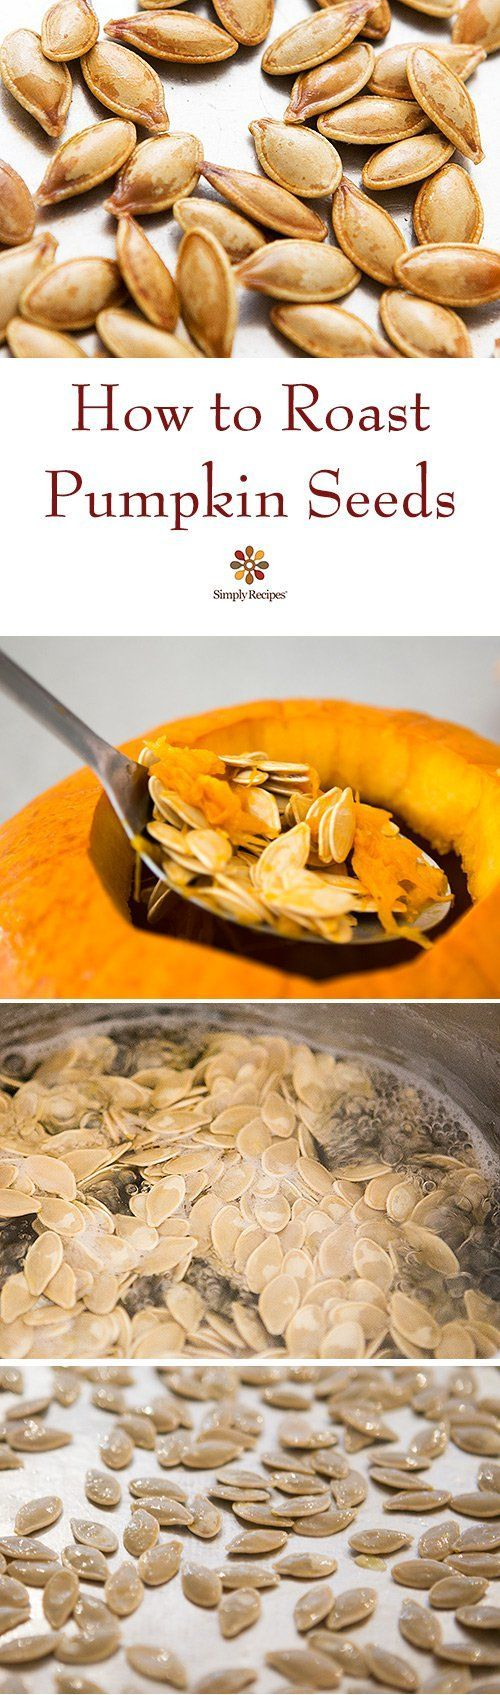 Roasted Pumpkin Seeds ~ Don't throw away the pumpkin seeds from your pumpkin!  Roast them for a delicious healthy Halloween snack ~ www.simplyrecipes...